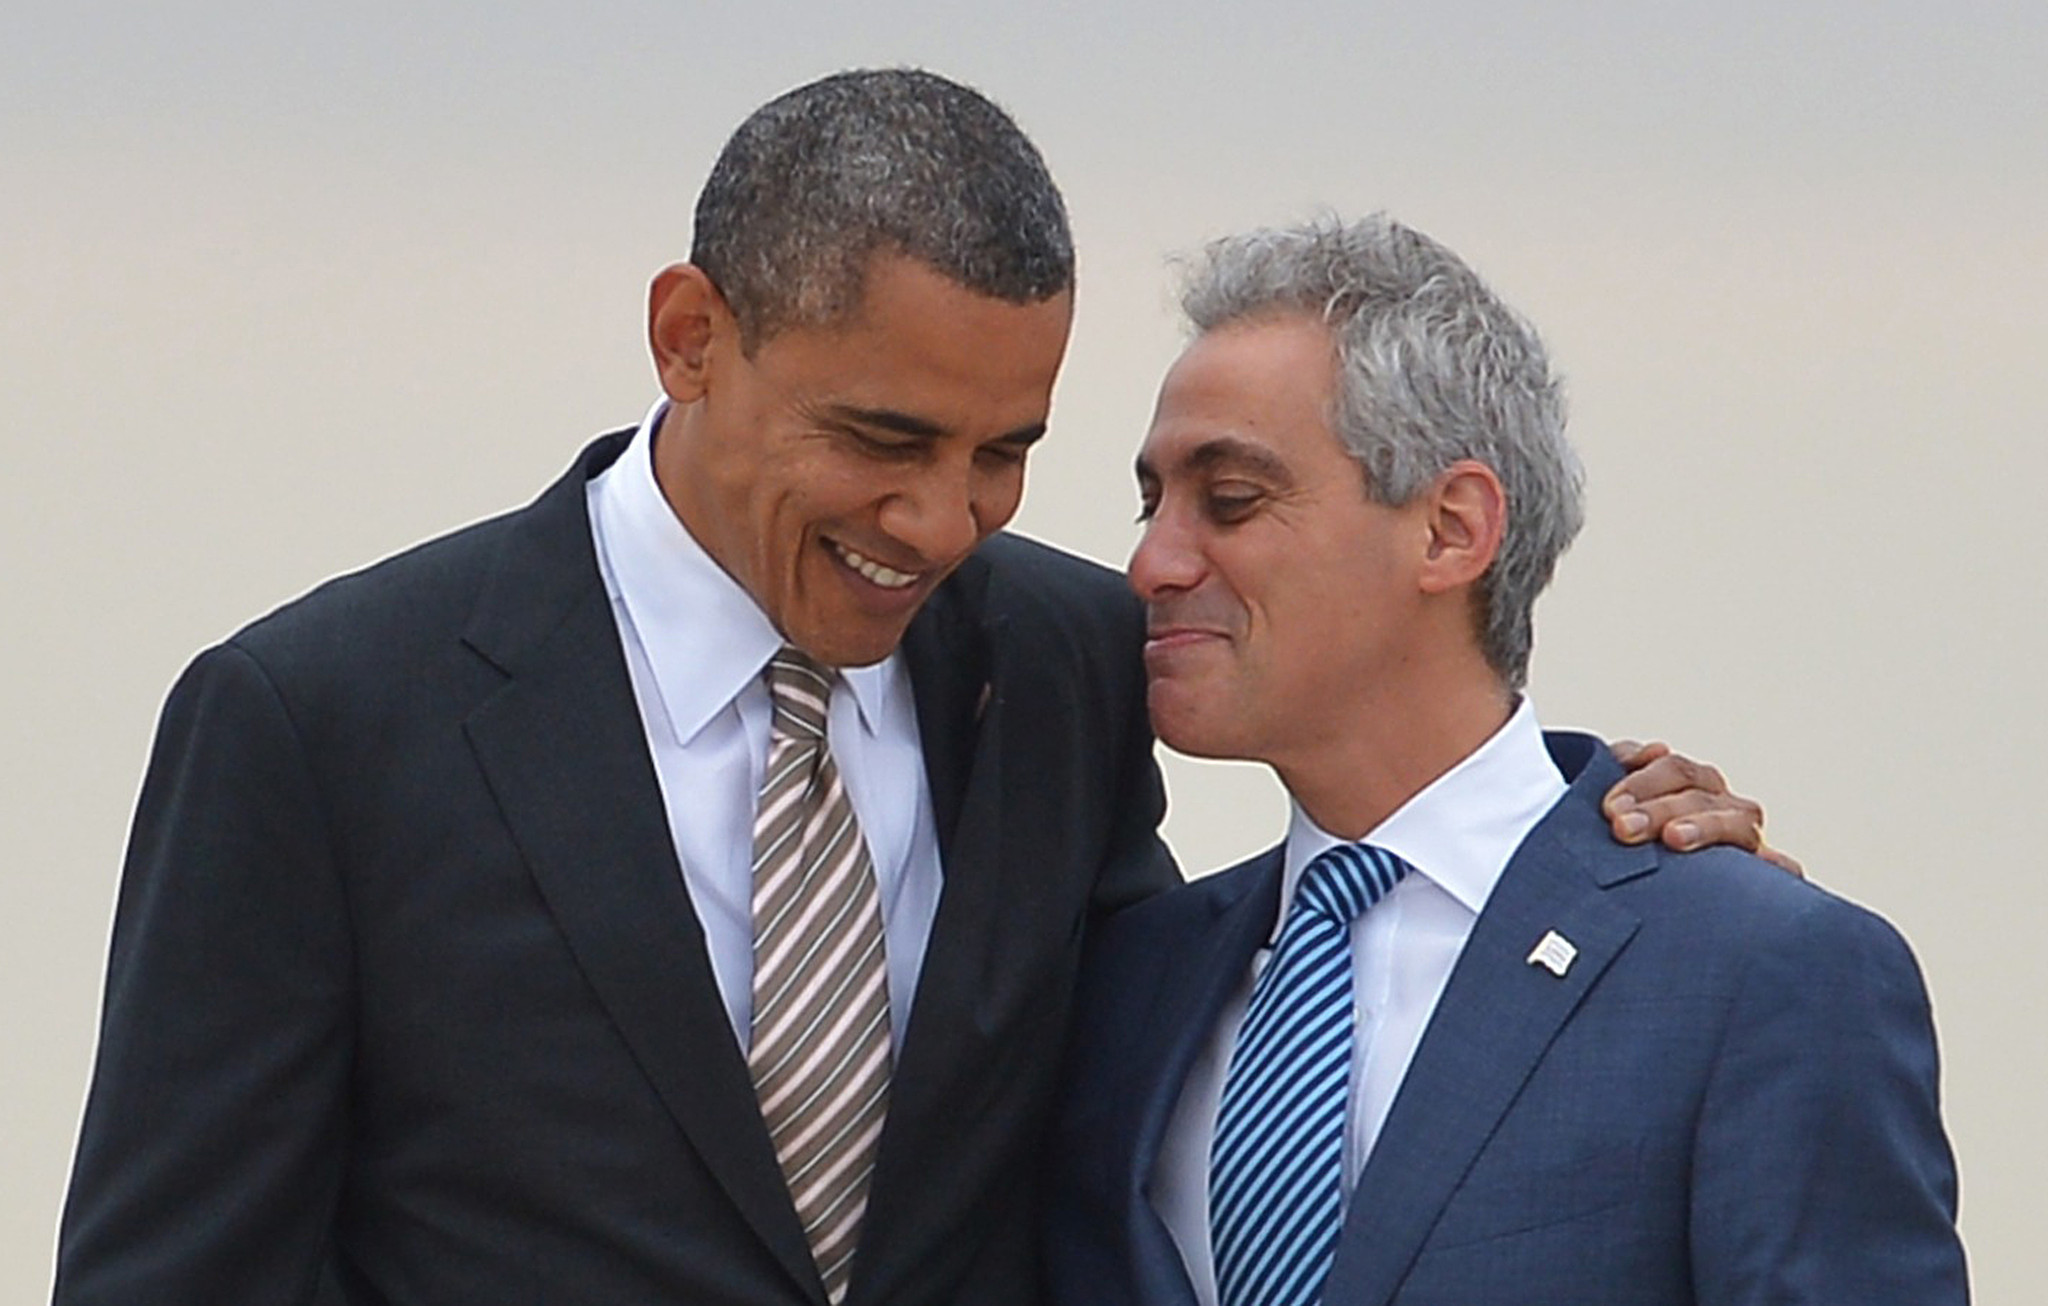 ct-rahm-emanuel-democratic-convention-video-obama-perspec-0729-md-20160728